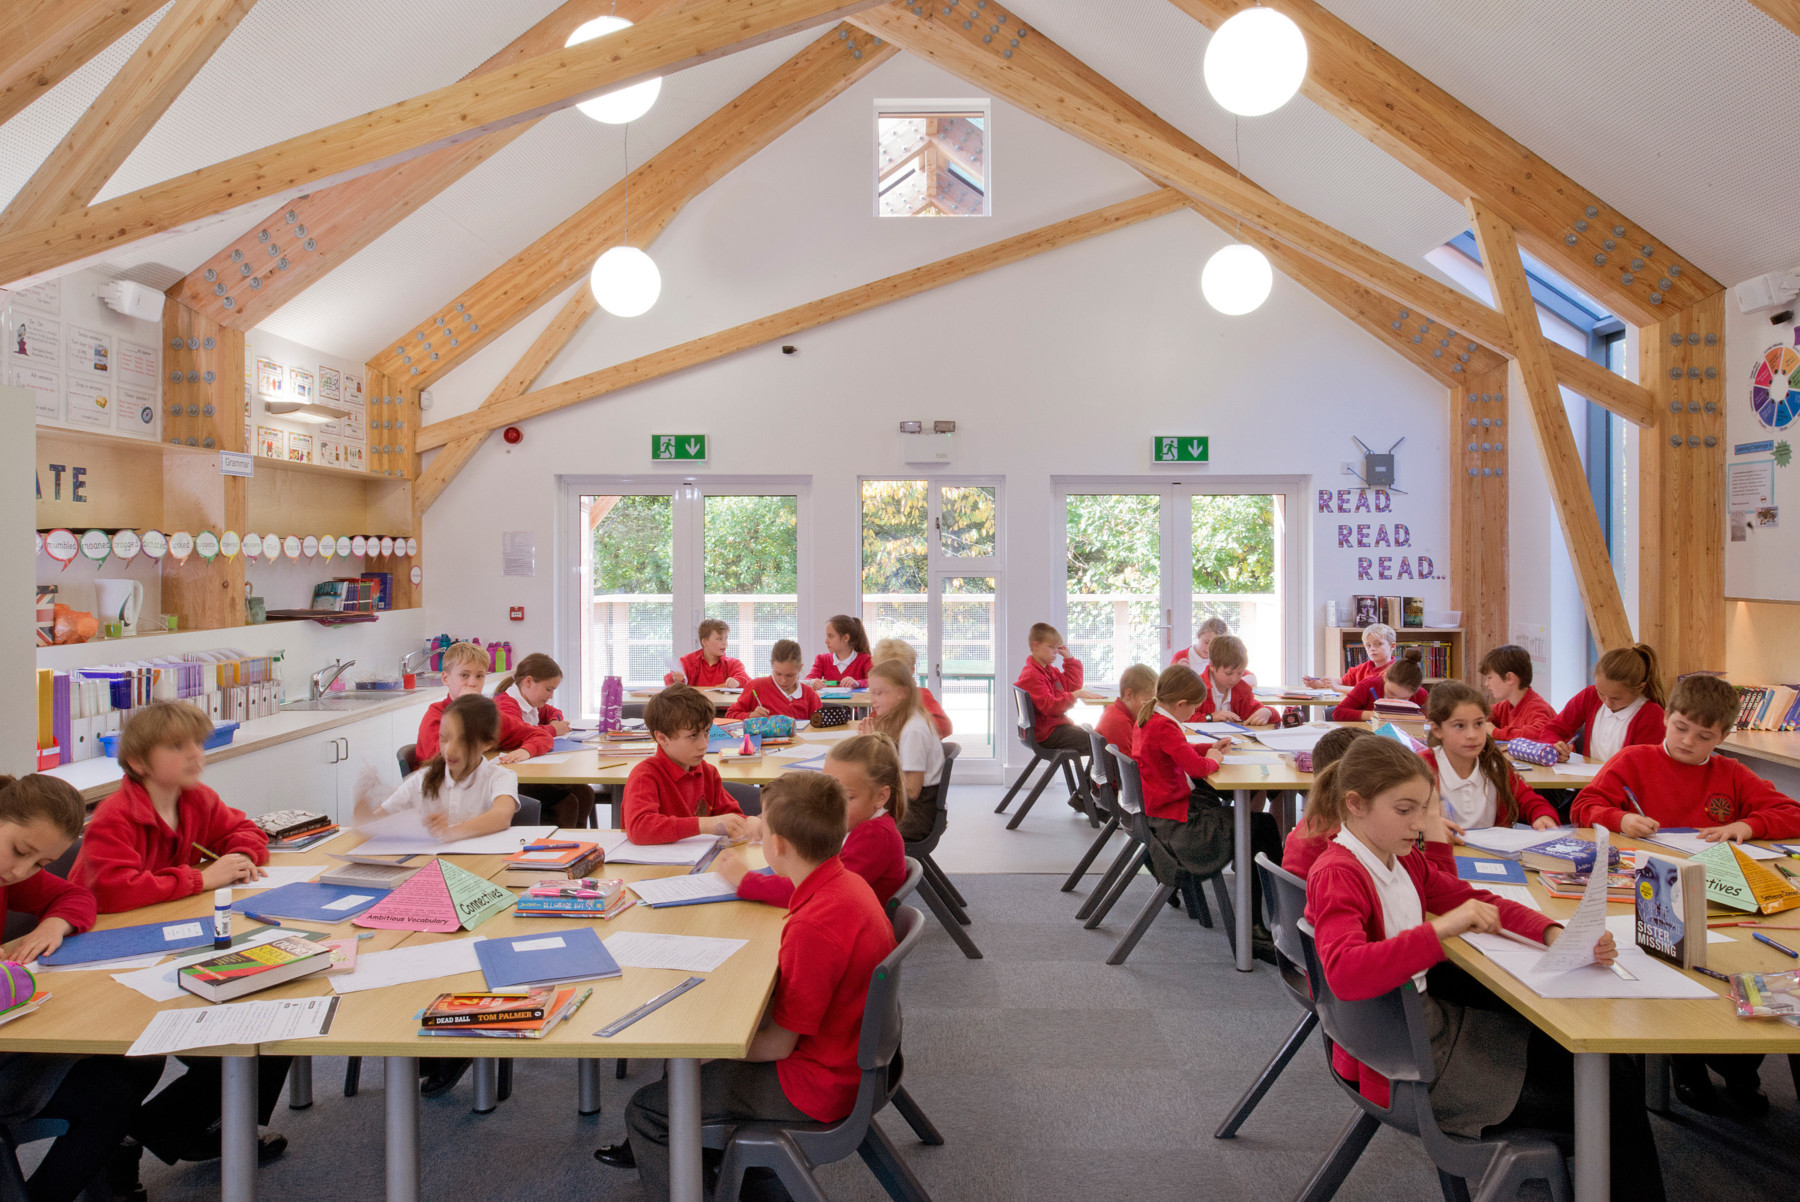 Sarah-Wigglesworth-Architects Mellor Classroom 3600